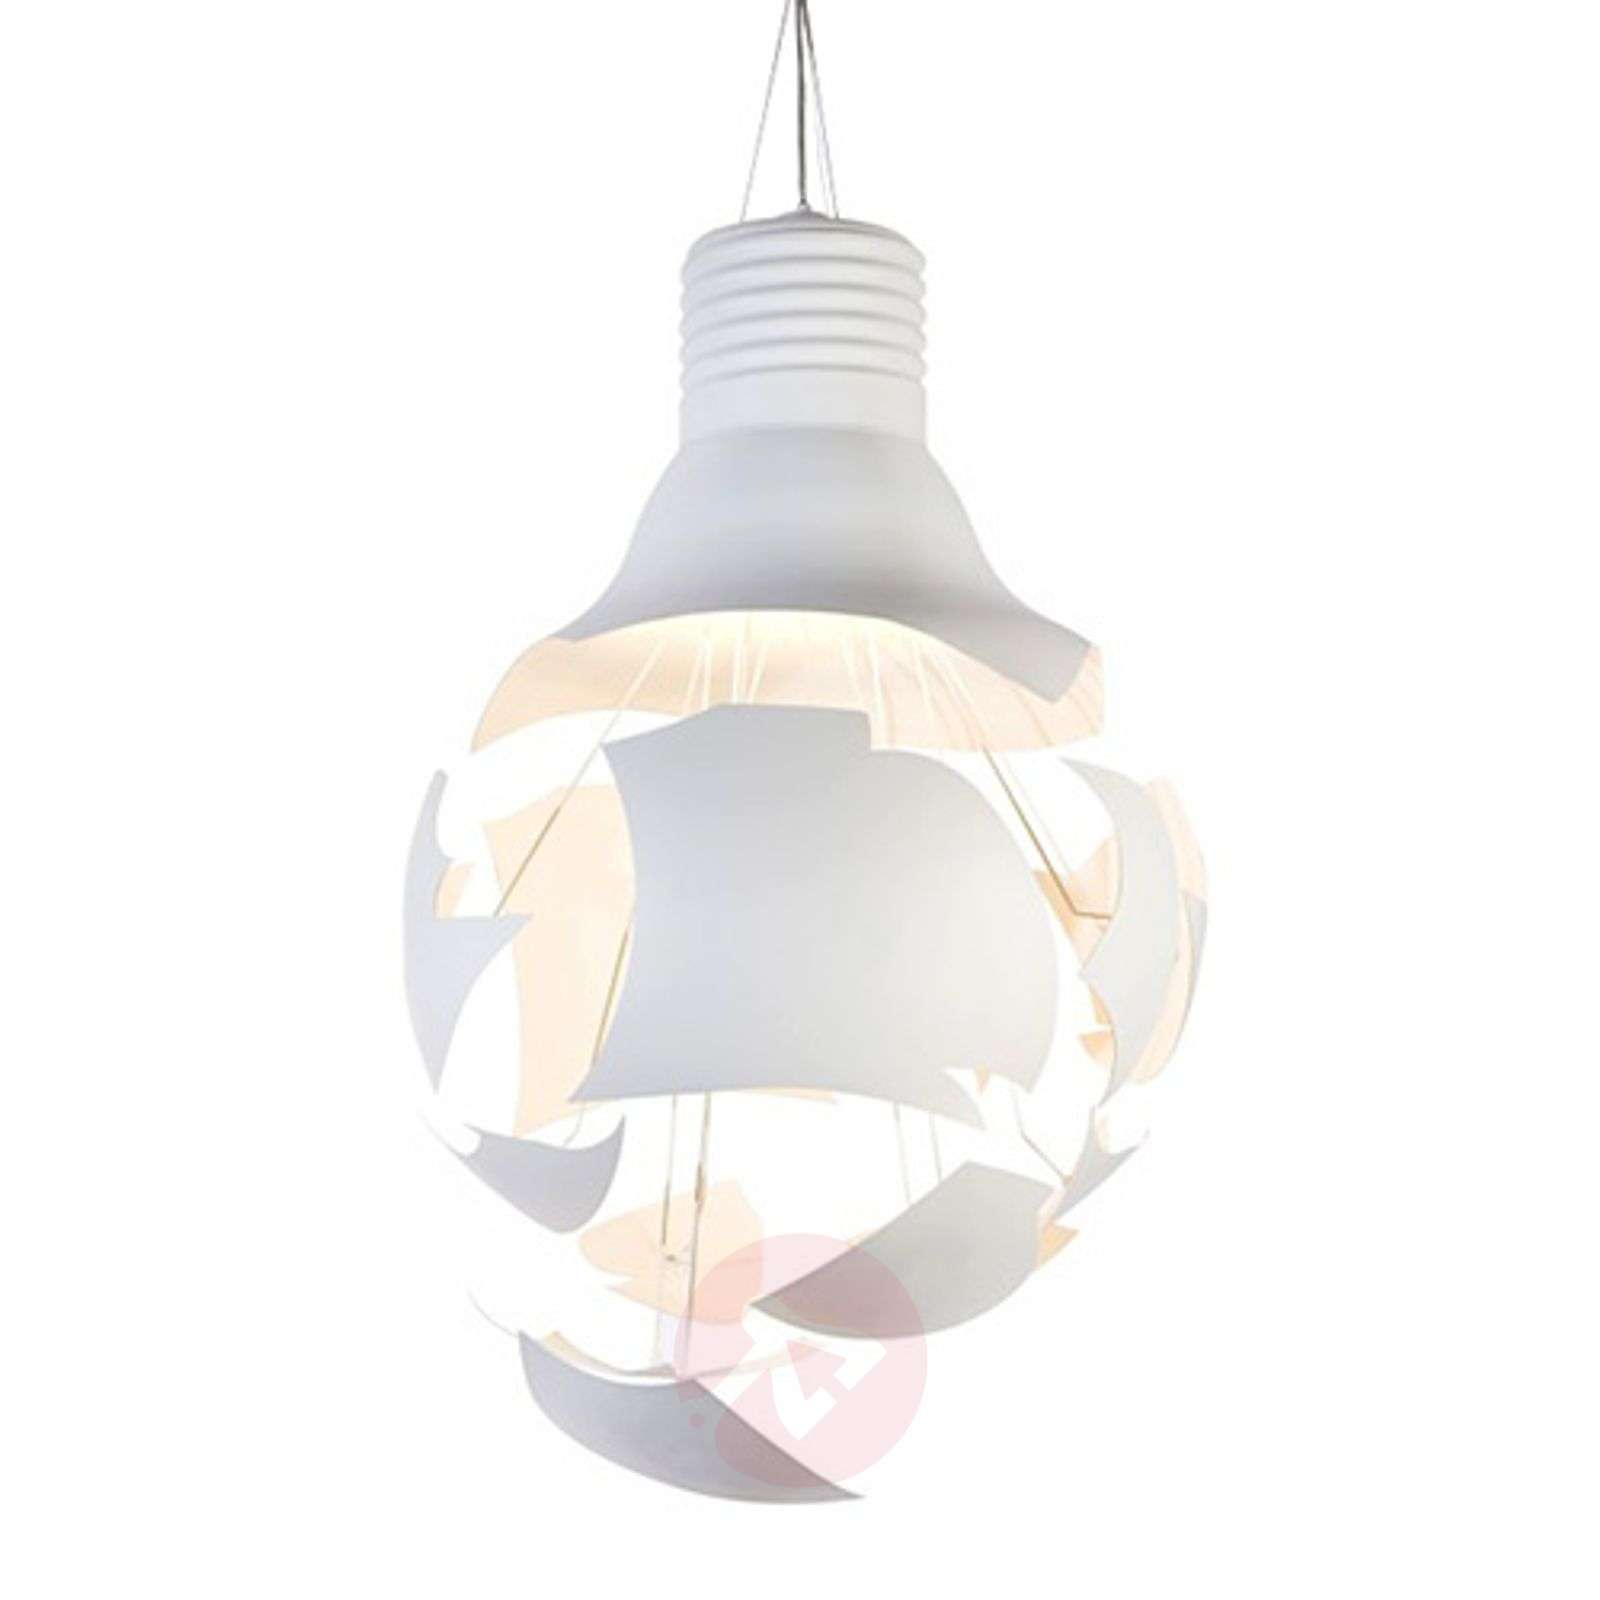 Suspension extraordinaire designer Broken Bulb-7013022-03